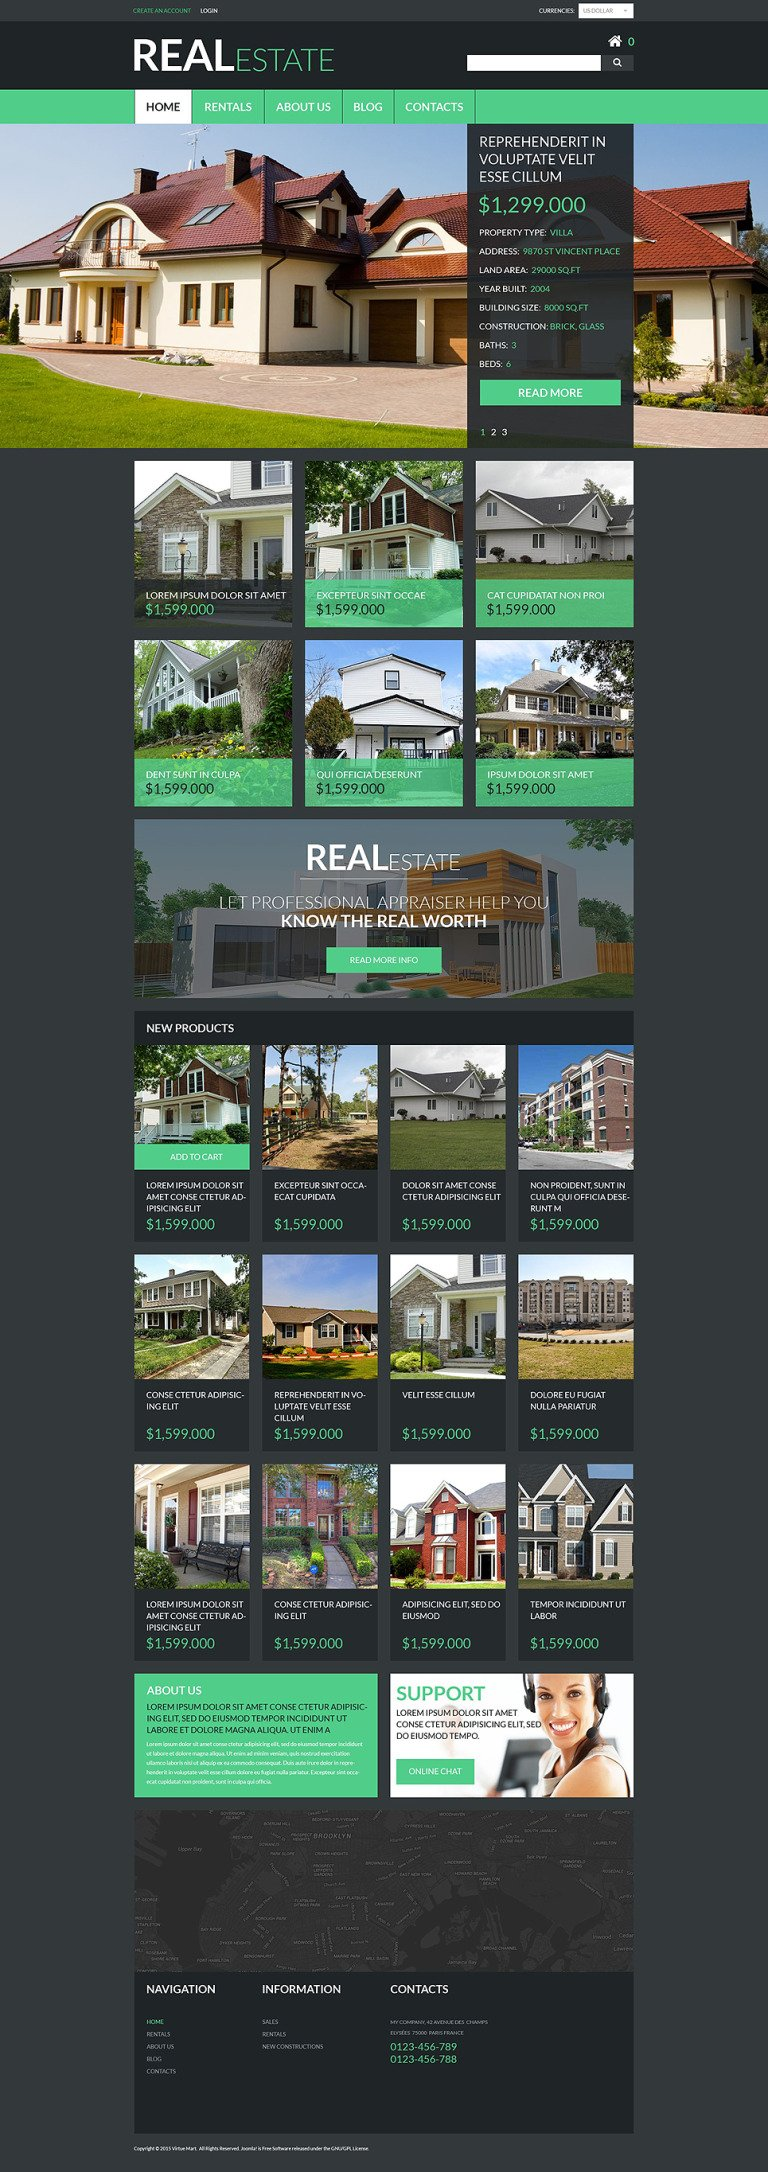 Real Estate Services VirtueMart Template New Screenshots BIG